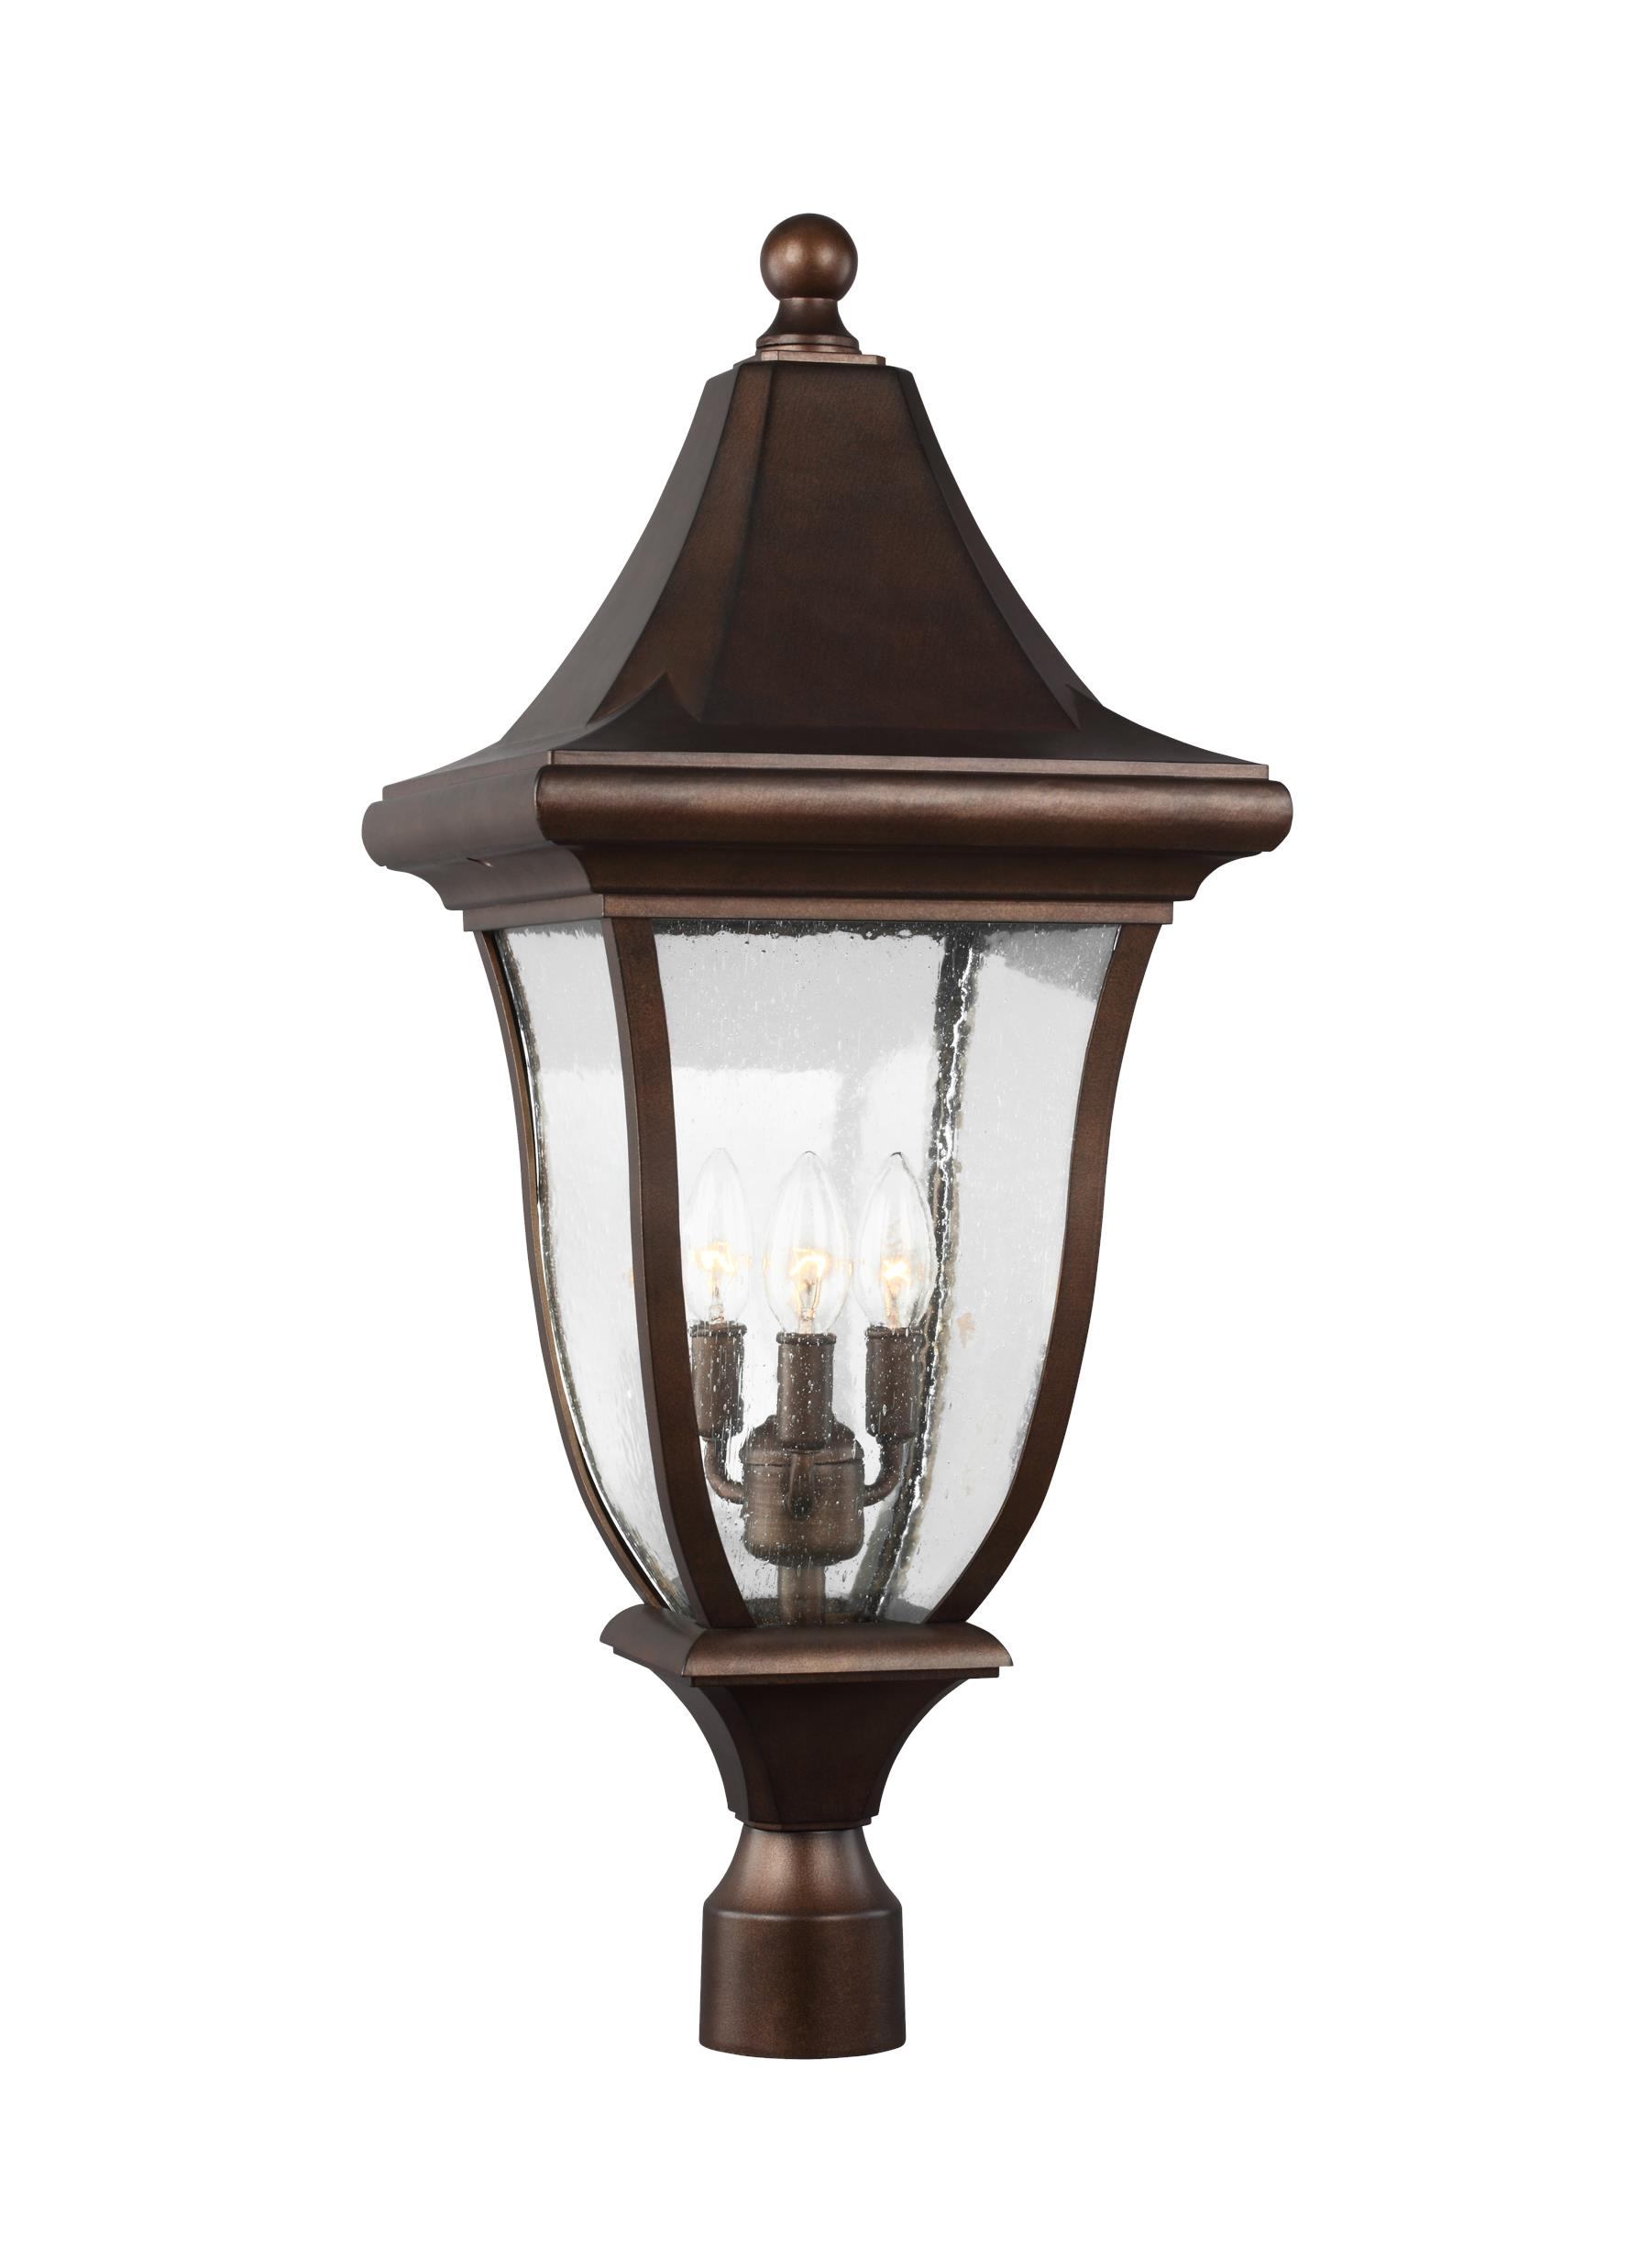 Ol13107ptbz3 light outdoor post lanternpatina bronze loading zoom mozeypictures Choice Image